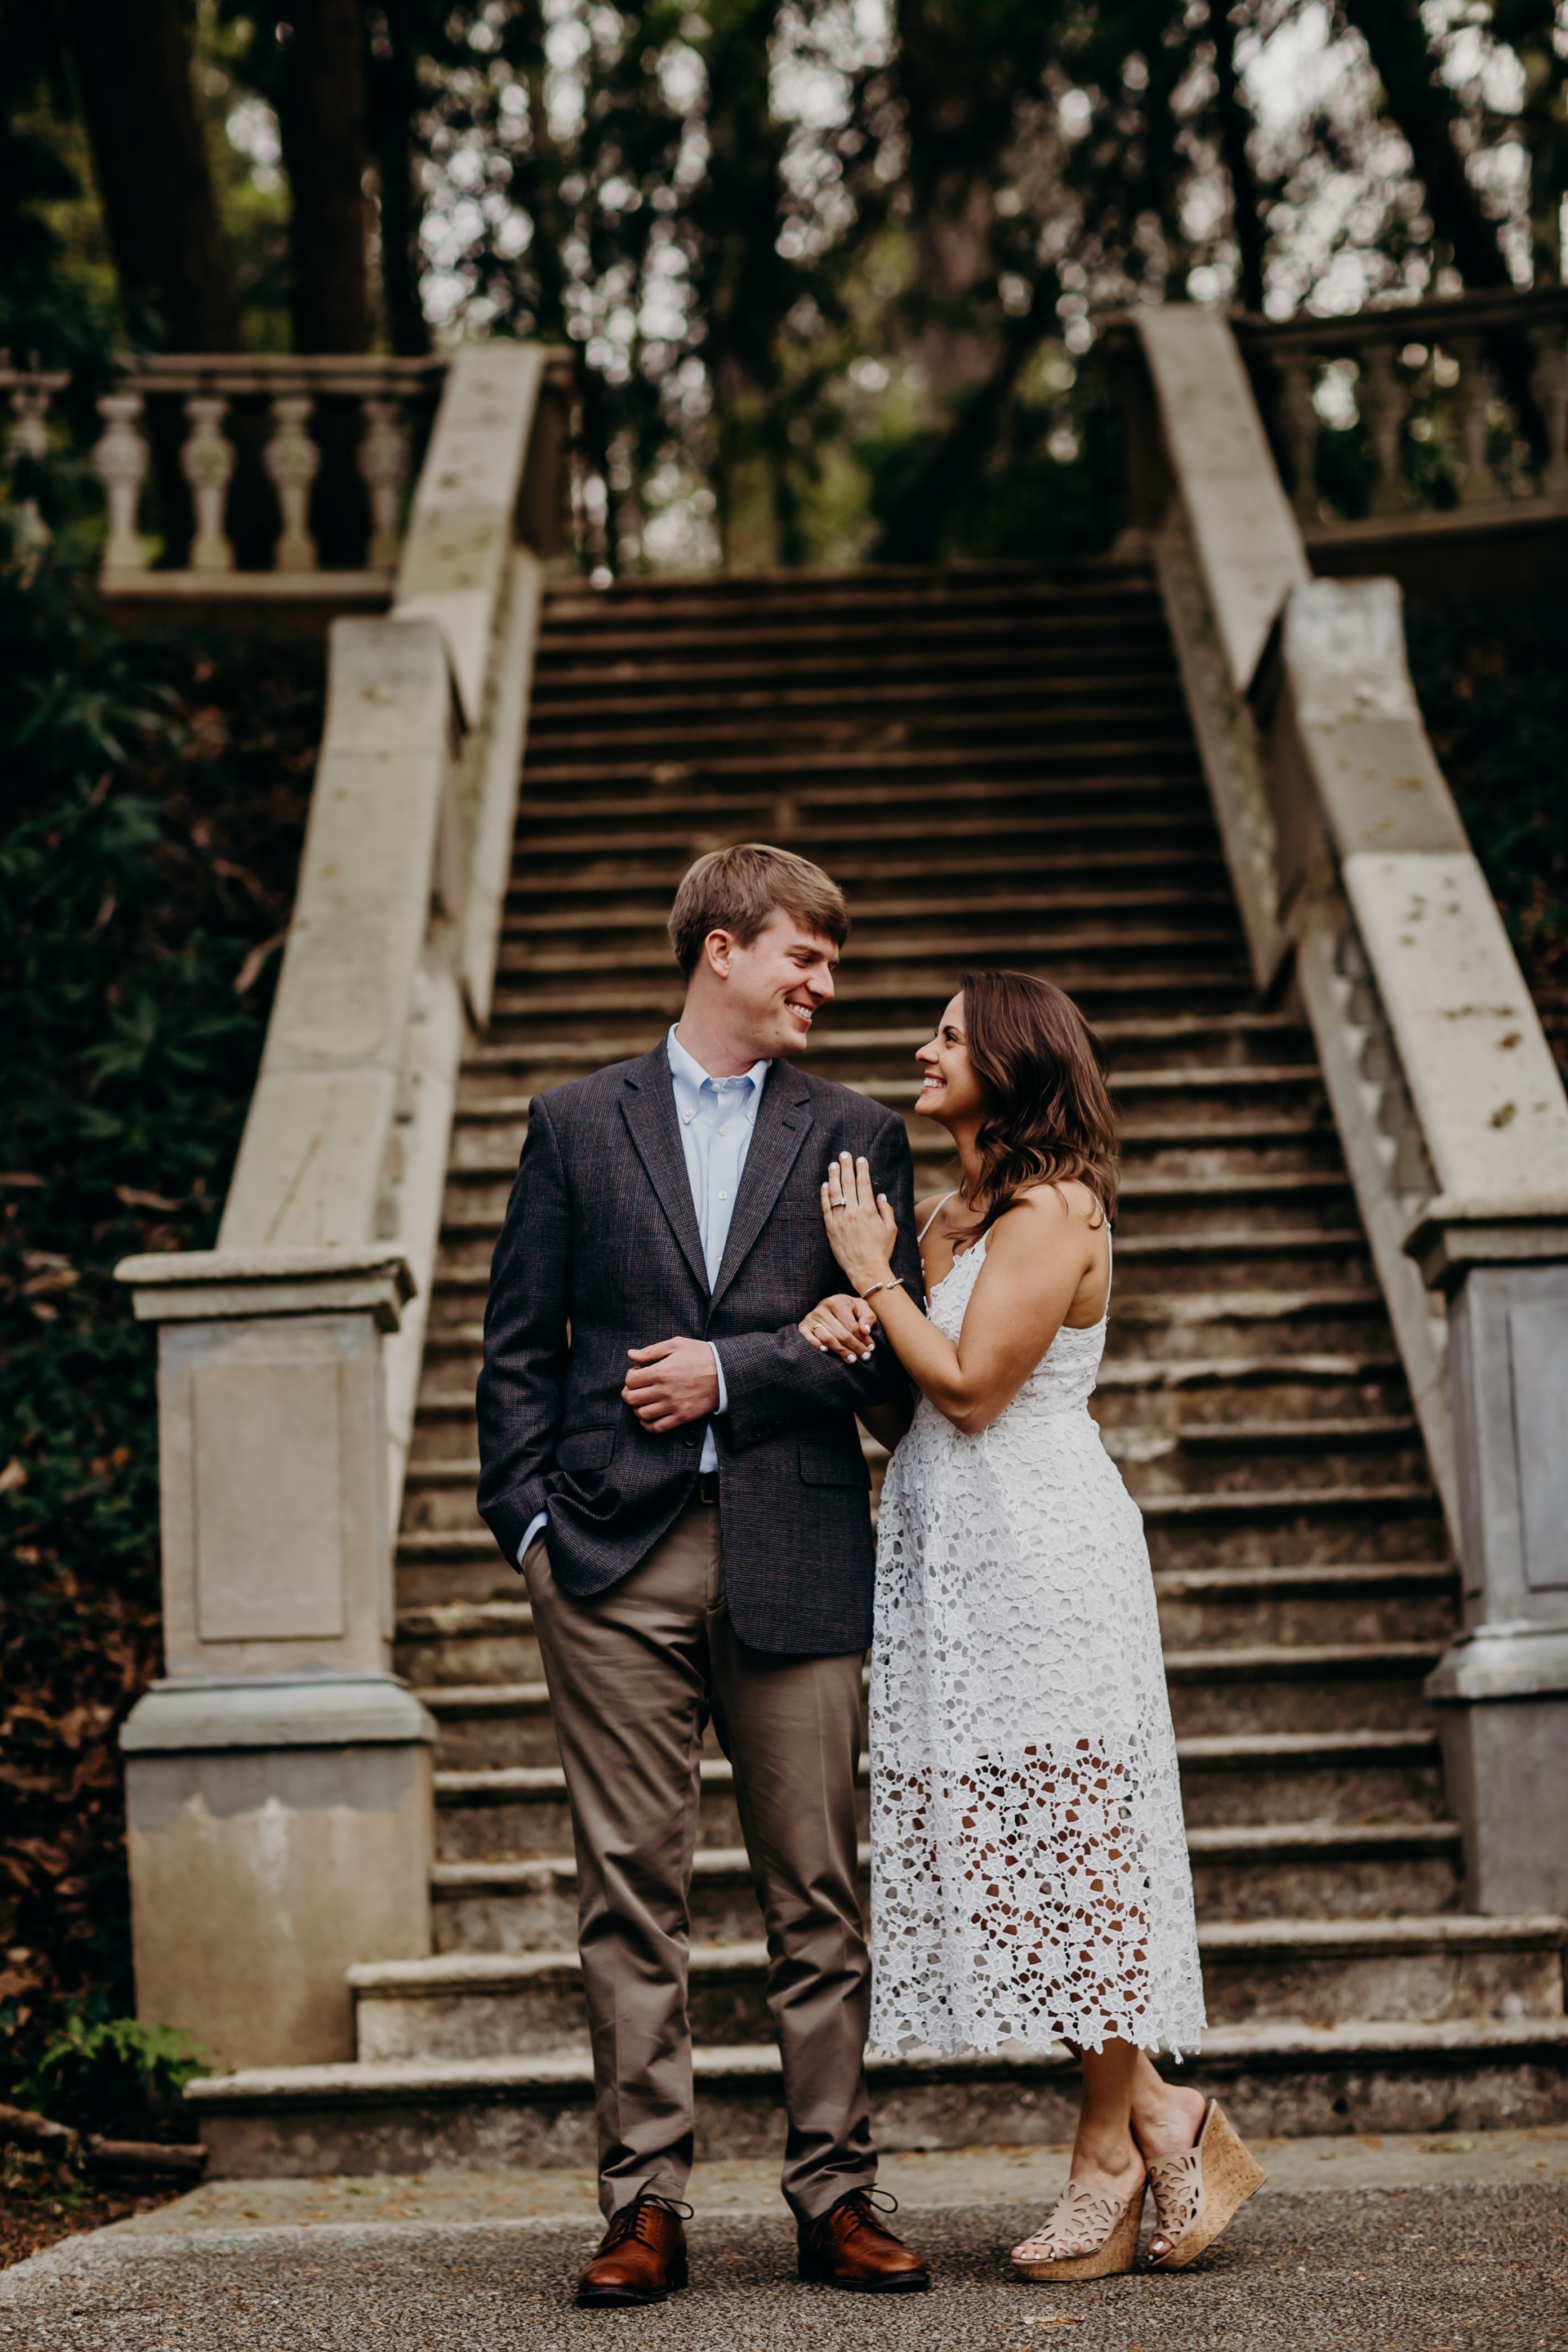 Gianna Keiko Atlanta NYC California Wedding Elopement Photographer_ Engagement-13.jpg